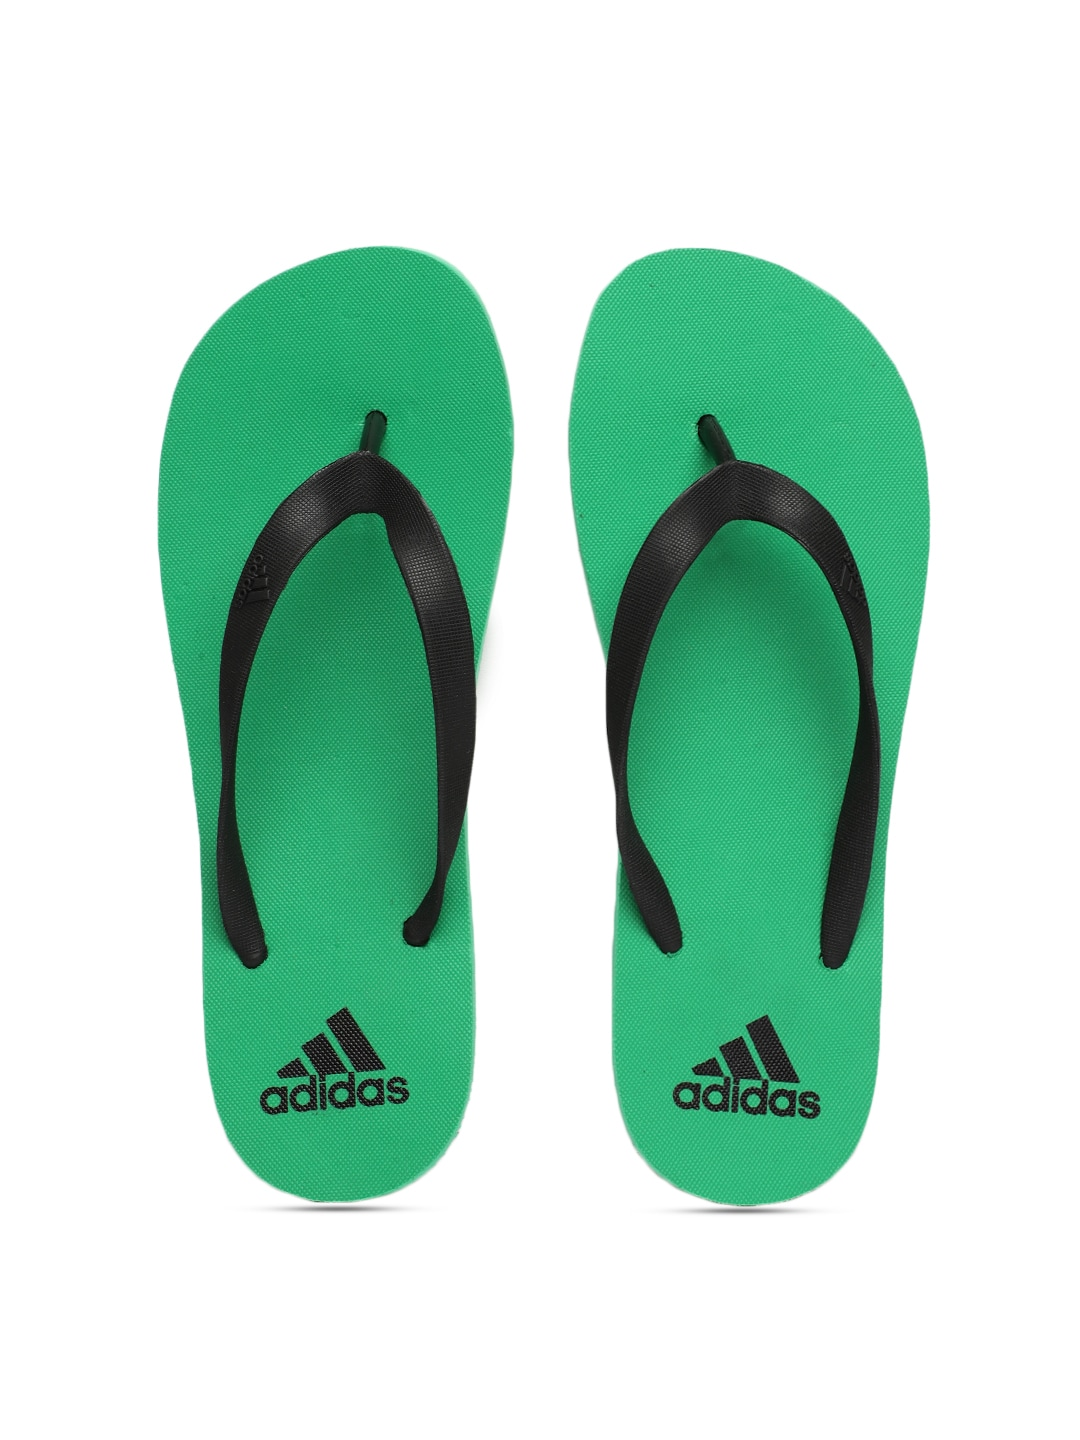 718d837e9 Adidas Adze Green Flip Flops for Men online in India at Best price ...